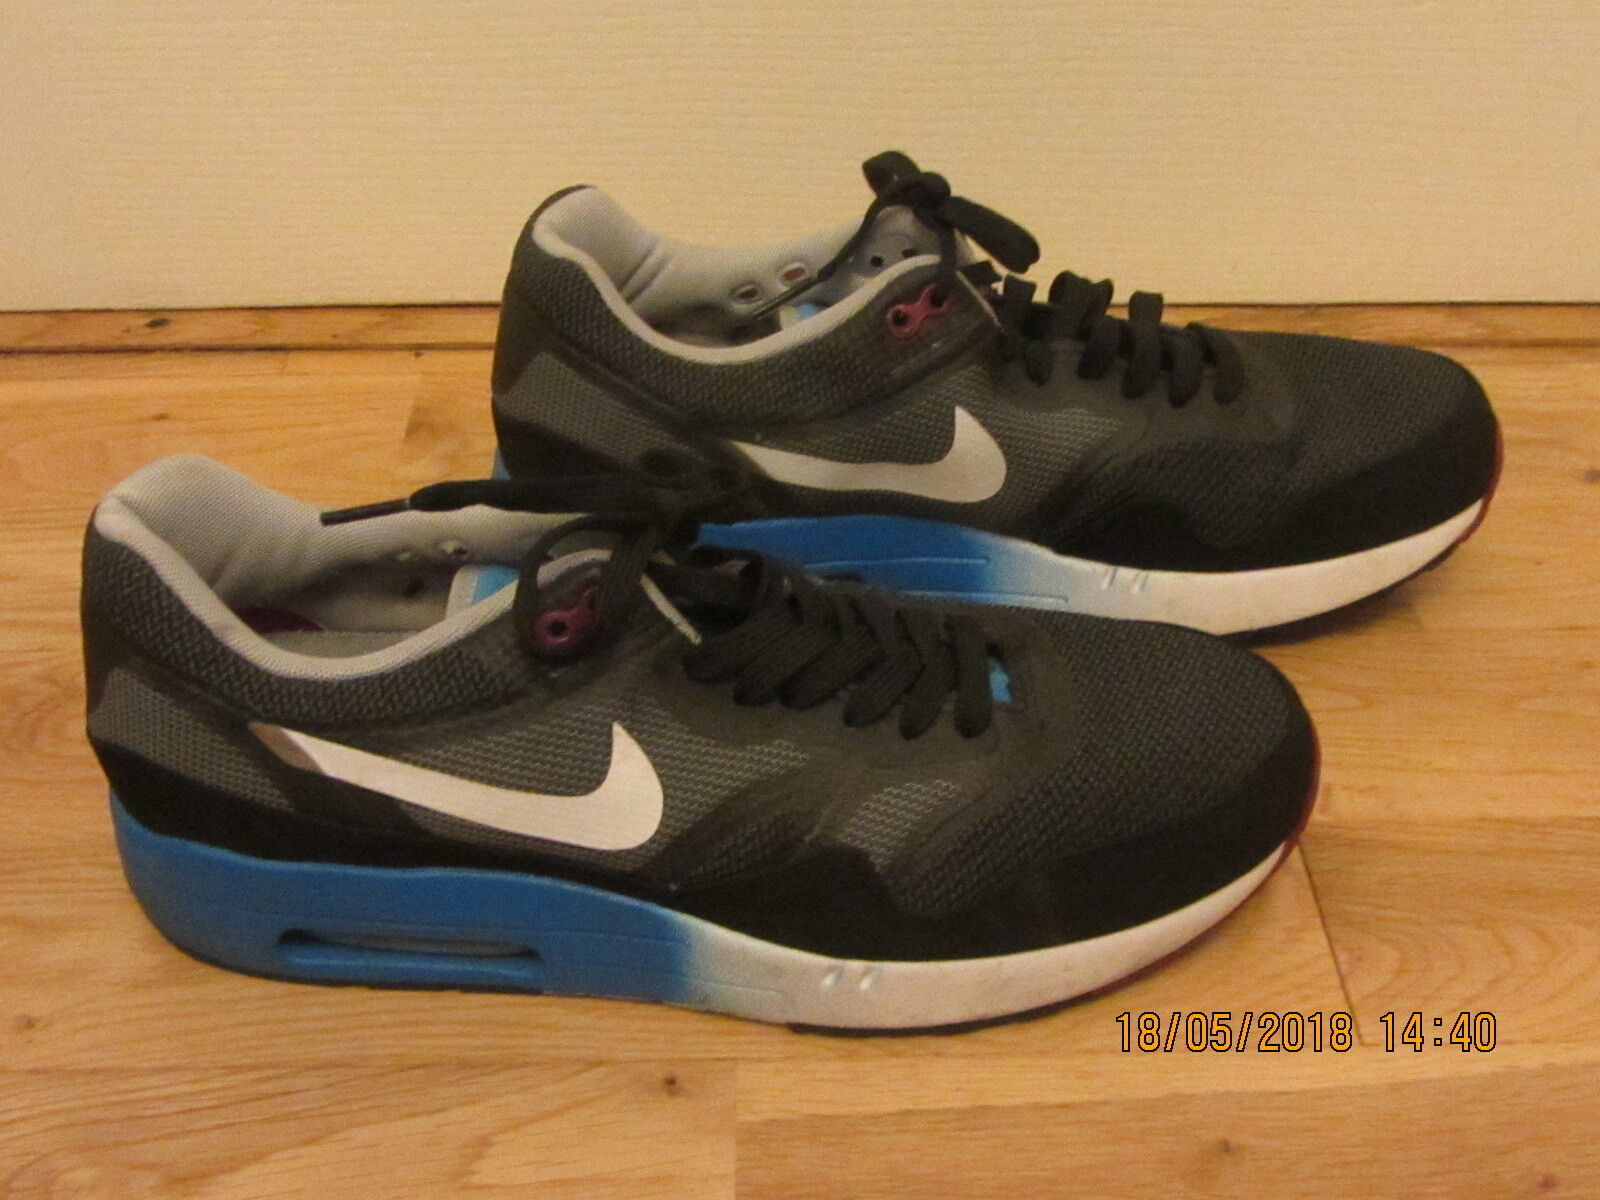 MENS NIKE AIR MAX GREY BLACK & blueE TRAINERS SIZE 8 42.5 USED GOOD CONDITION.